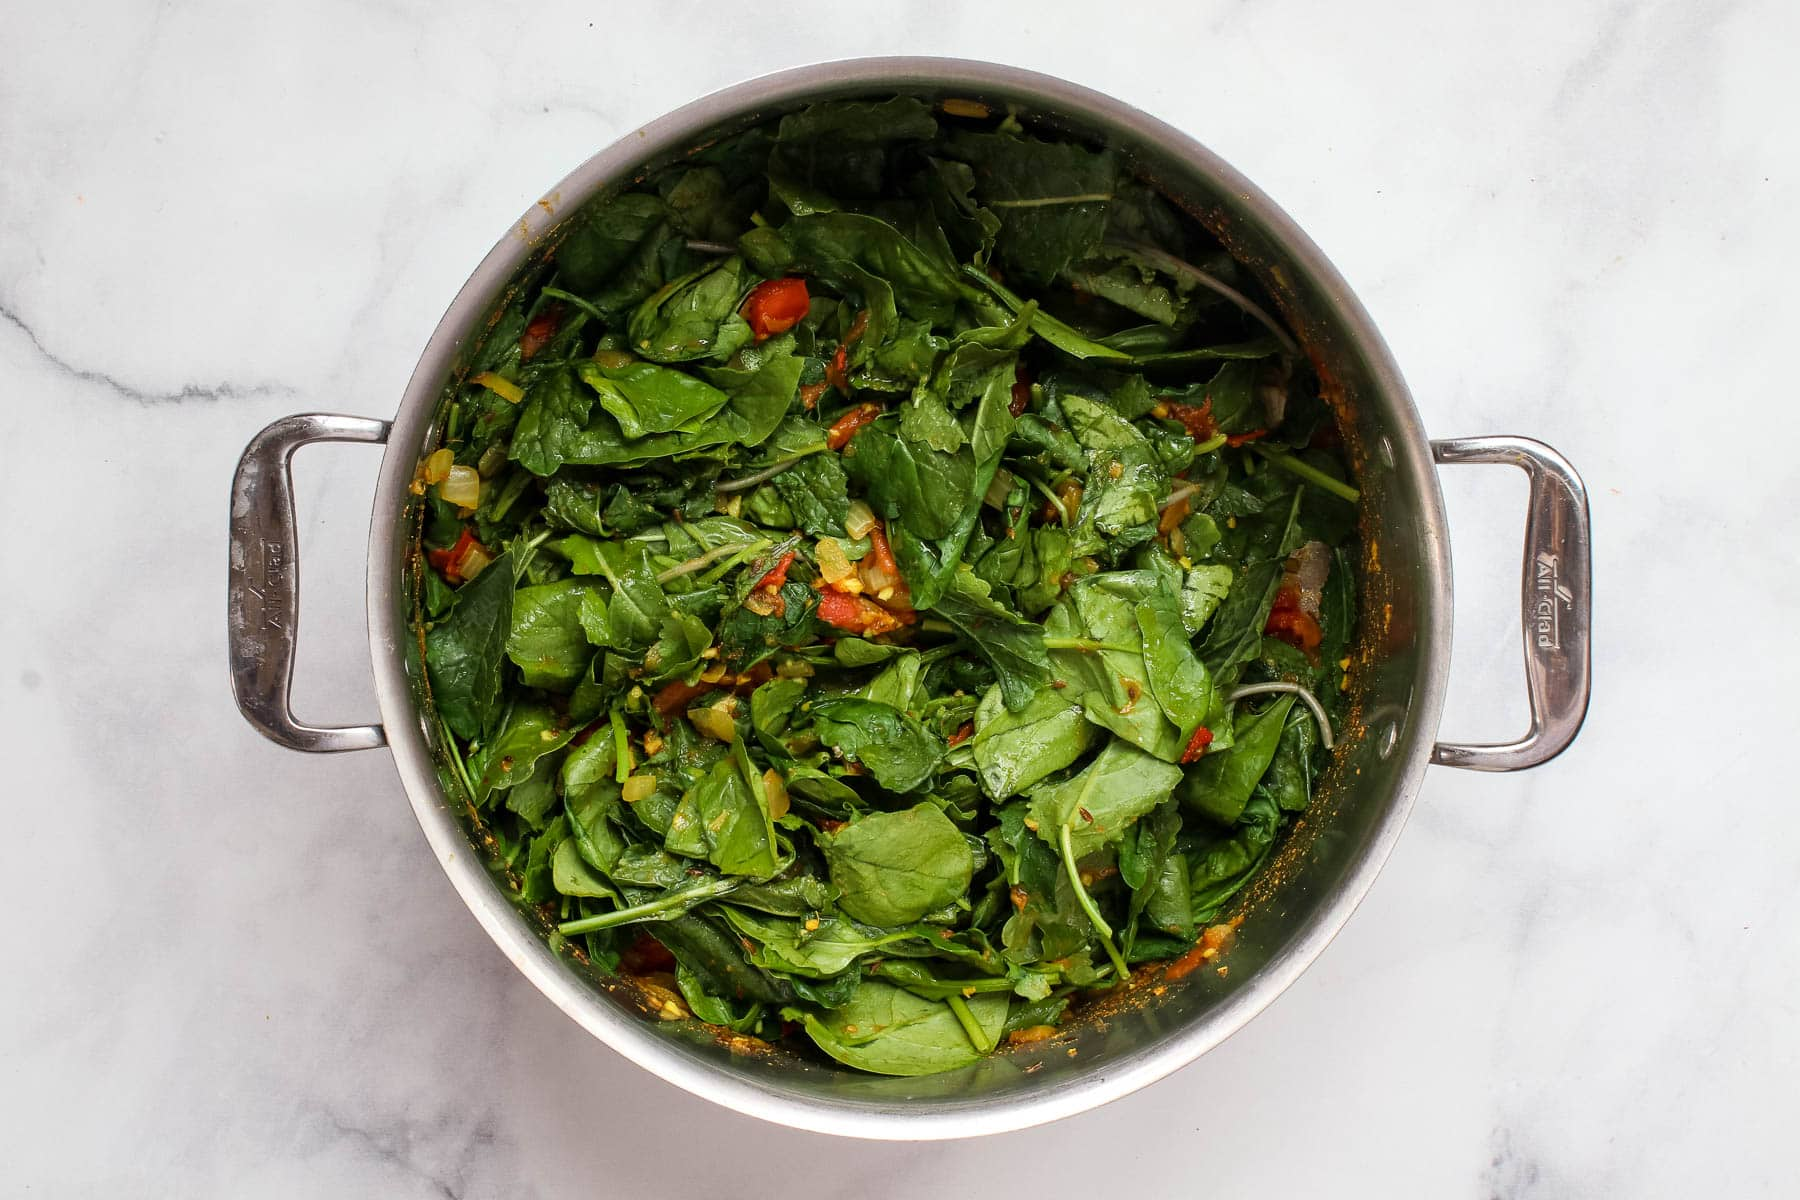 Pot of wilting spinach.